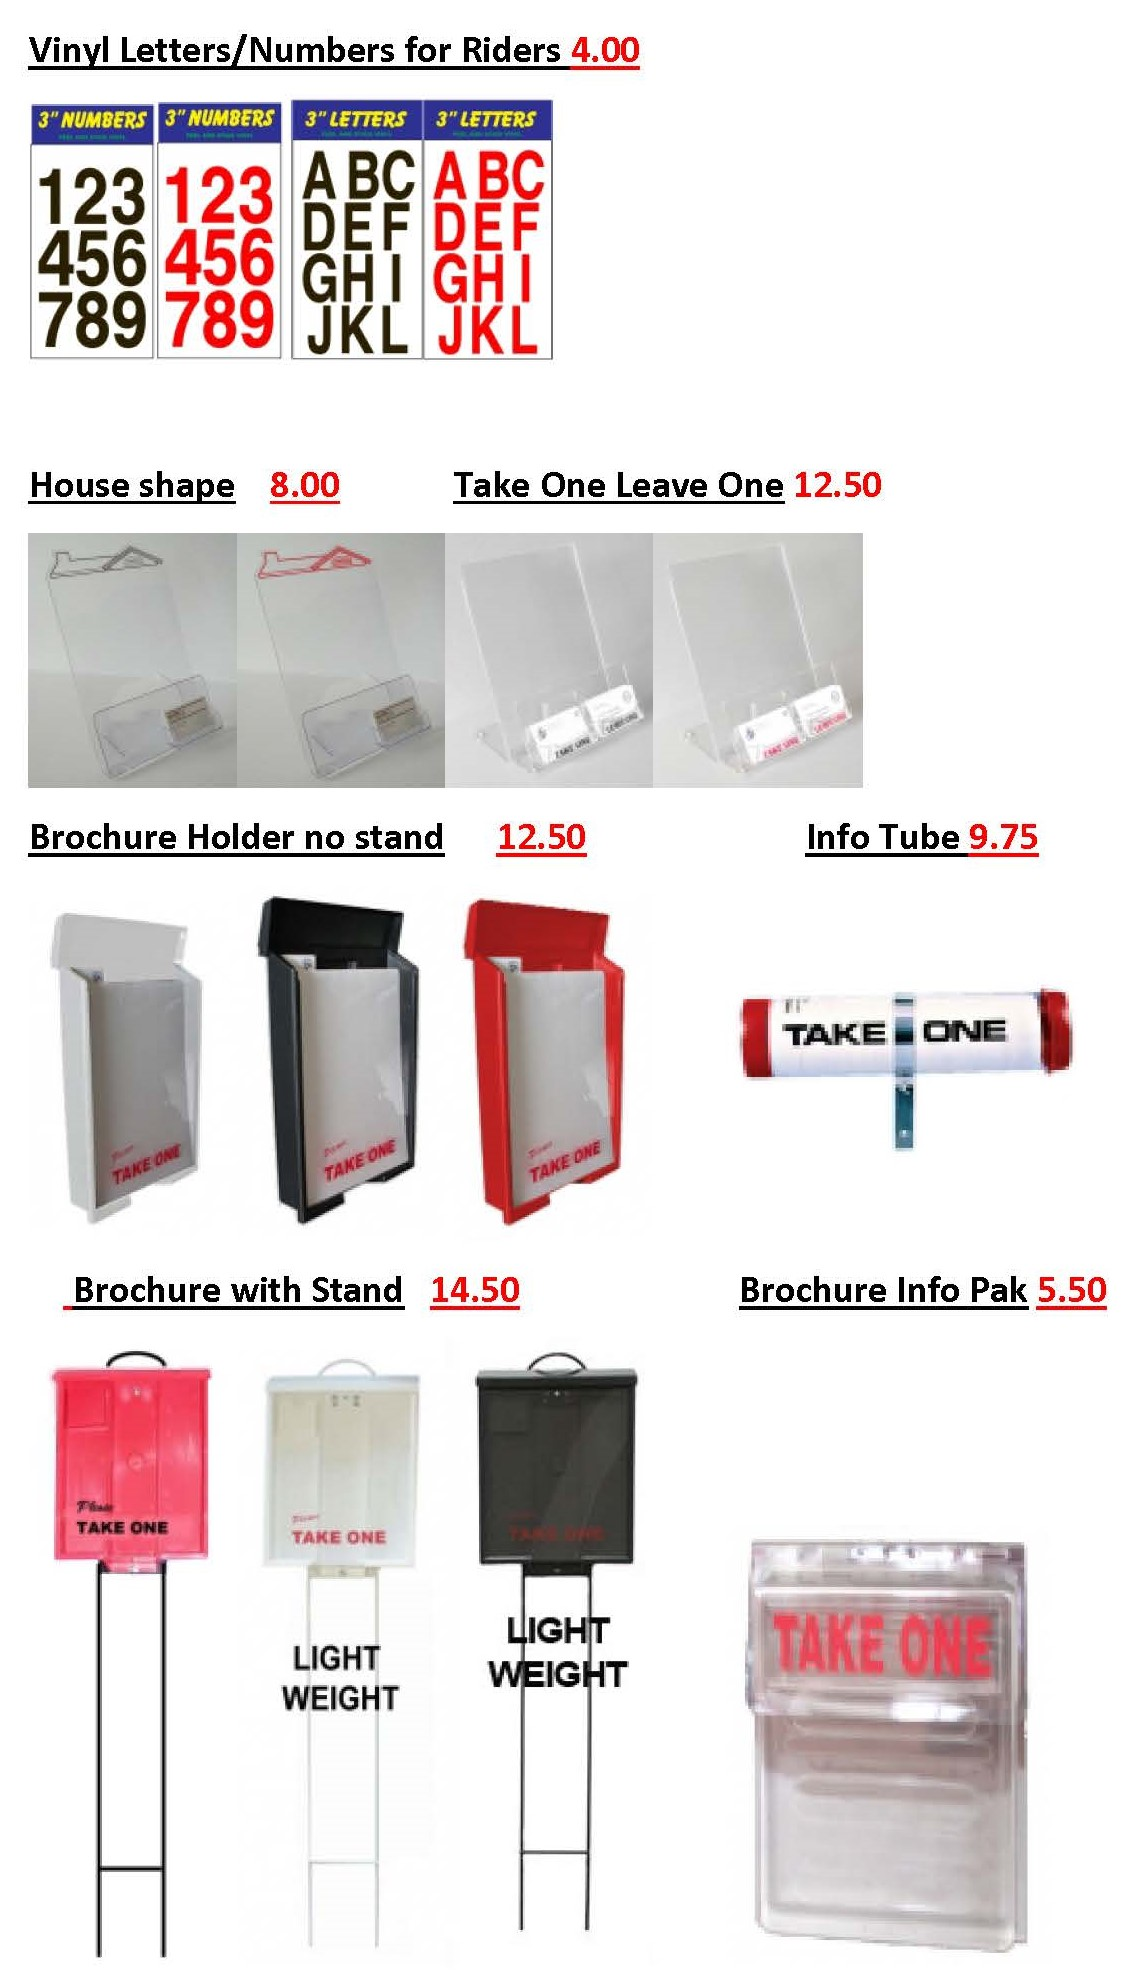 Stickers and brochure holders in multiple sizes and colors